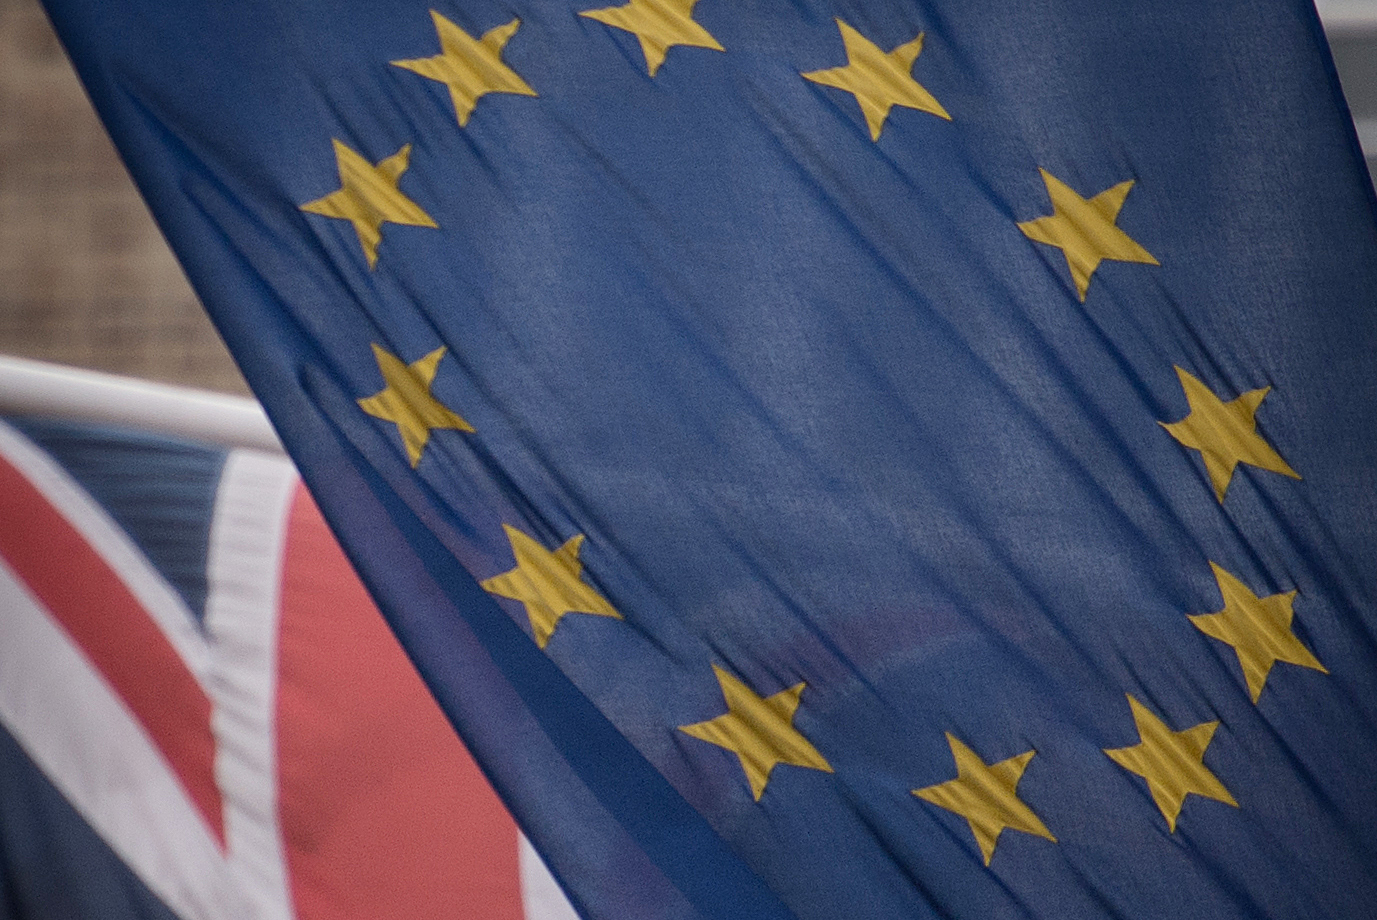 Embargoed to 0001 Thursday March 29  File photo dated 17/2/2016 of EU and  UK flags flying. Voters are more pessimistic about Brexit, but few have changed their minds about whether the UK should remain part of the European Union, accordin